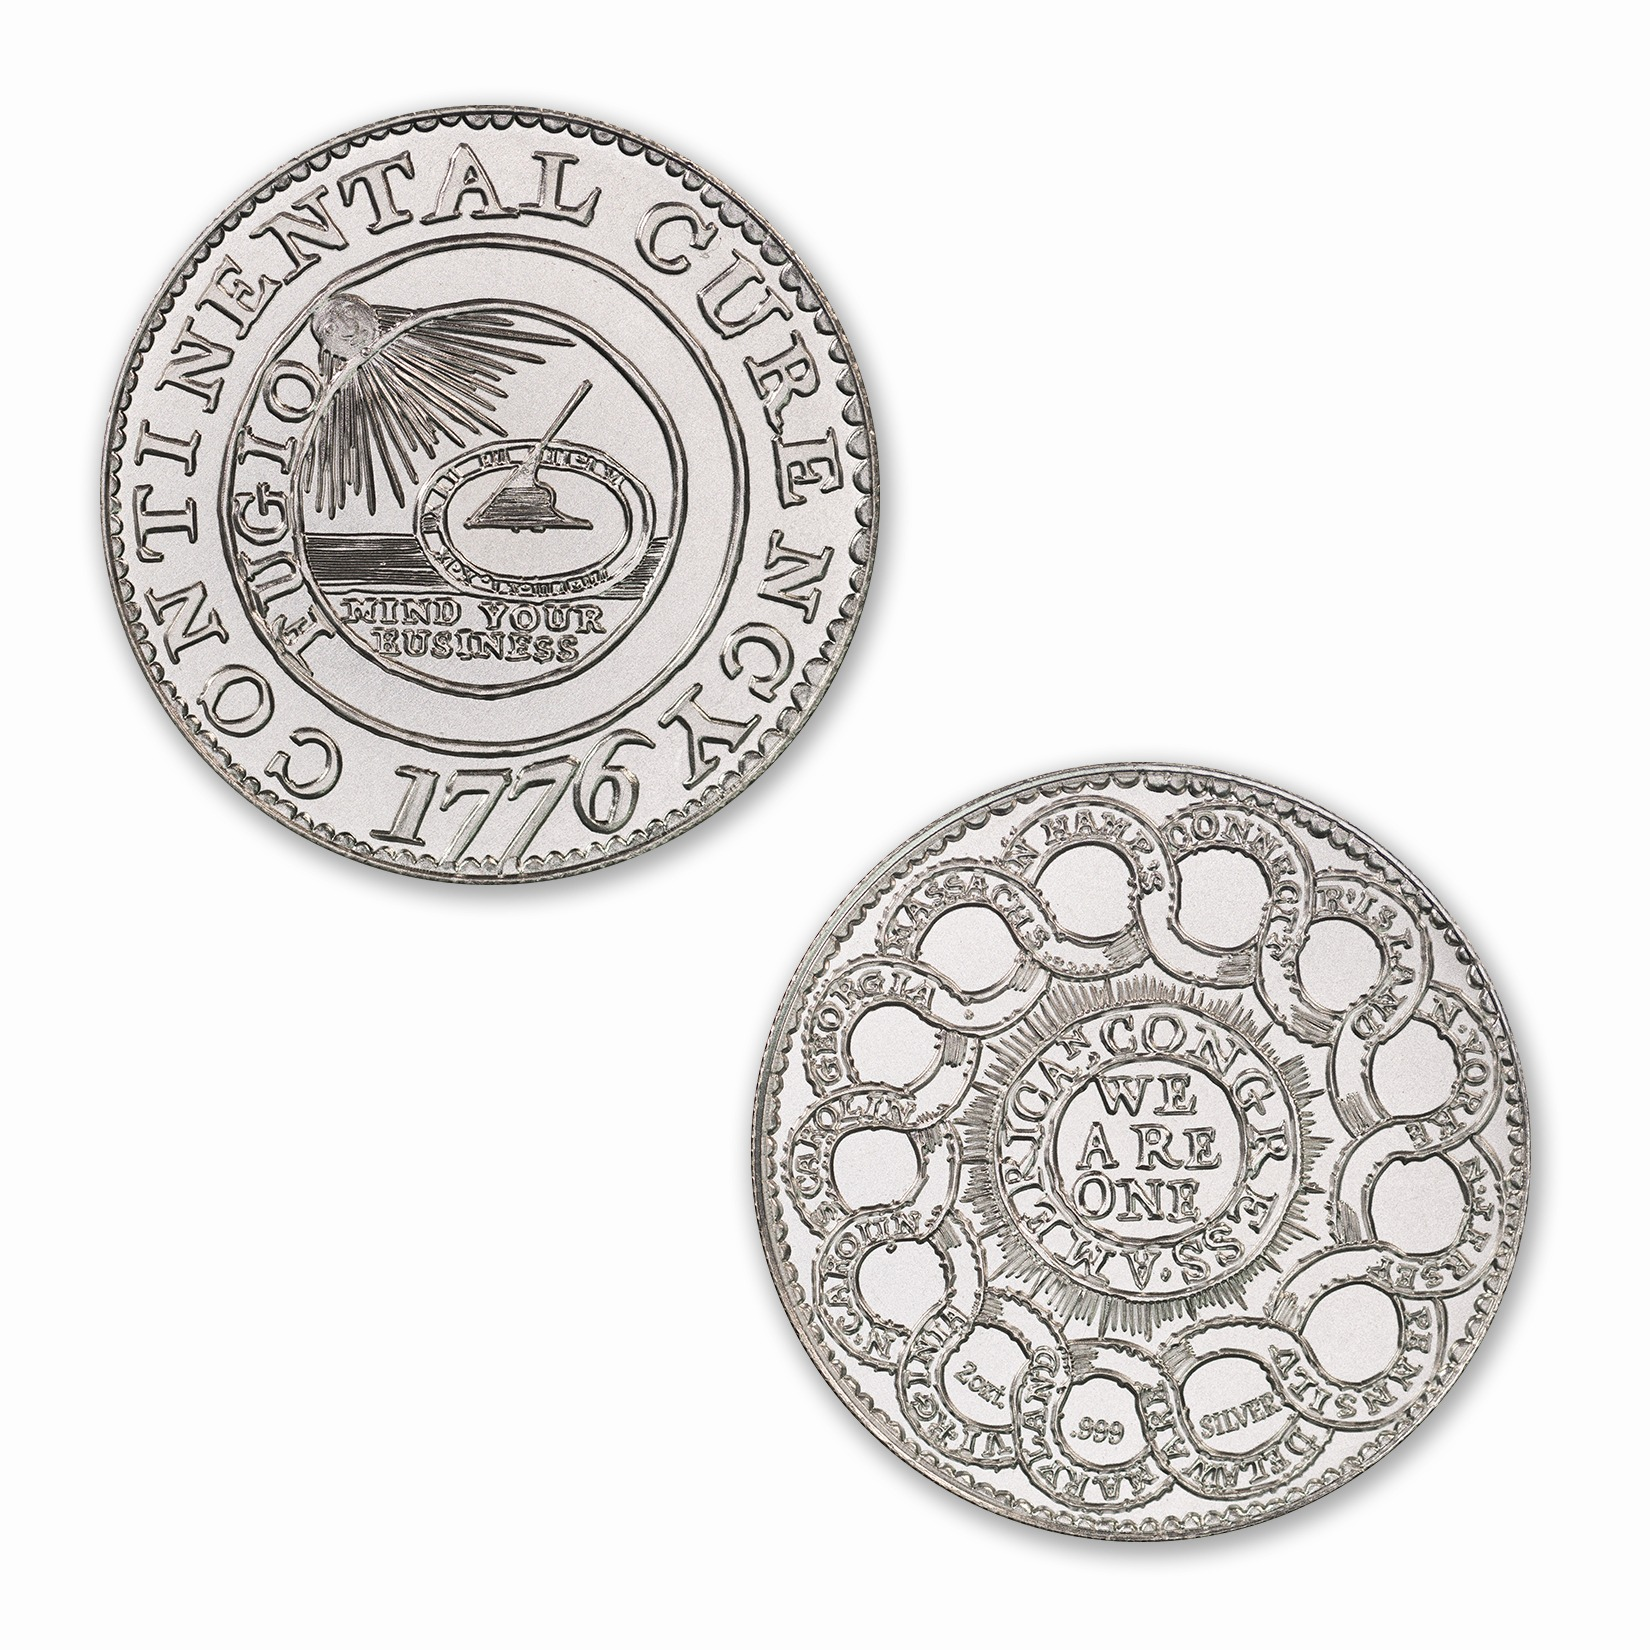 CONTINENTAL DOLLAR – 2 TROY OUNCE – 39MM